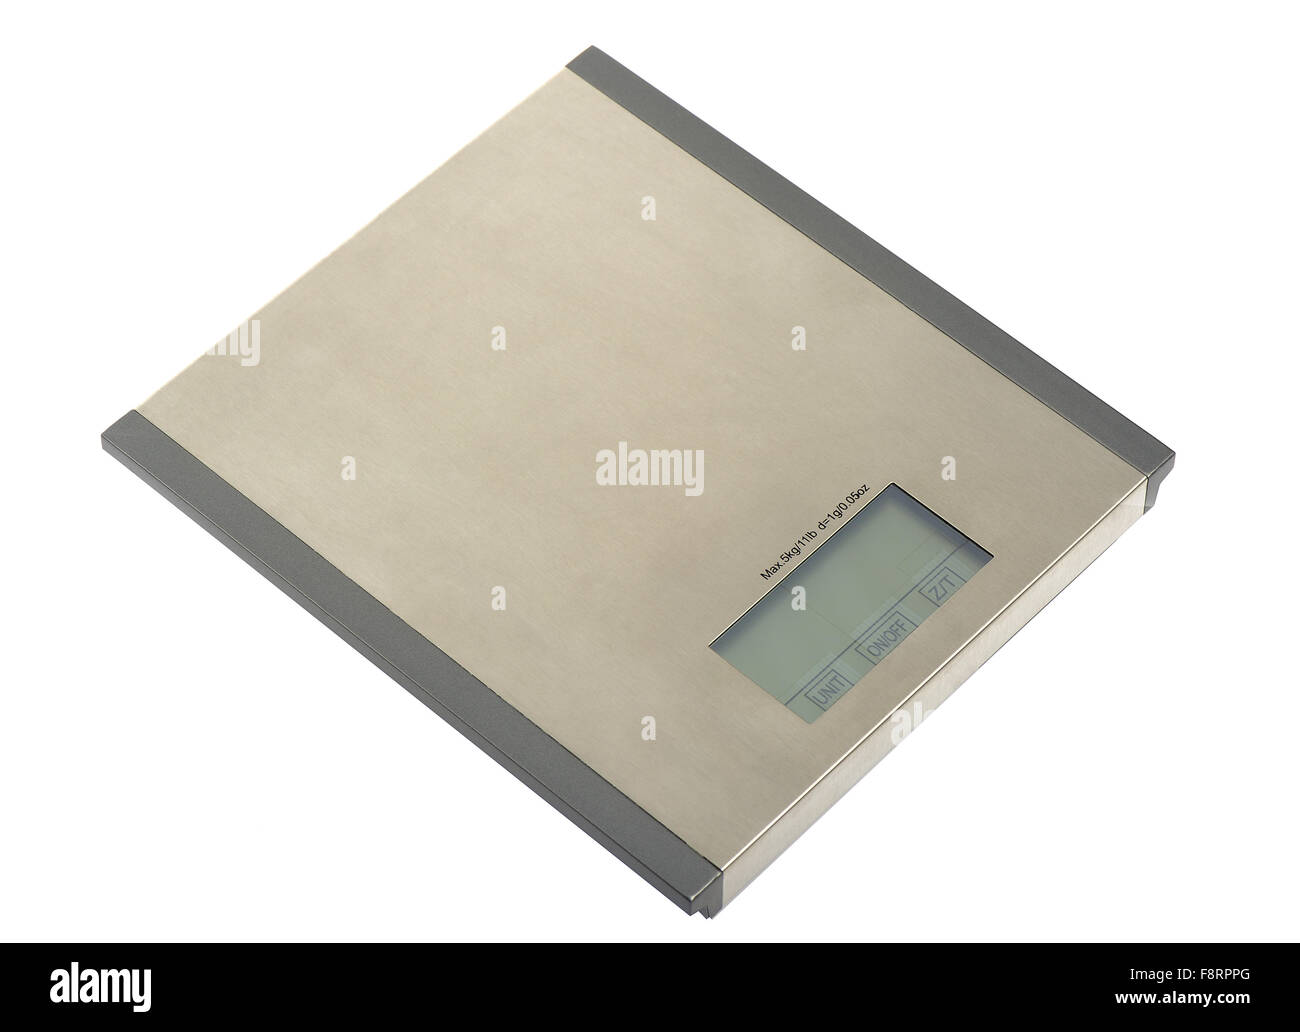 Metal electronic scales on a white background - Stock Image